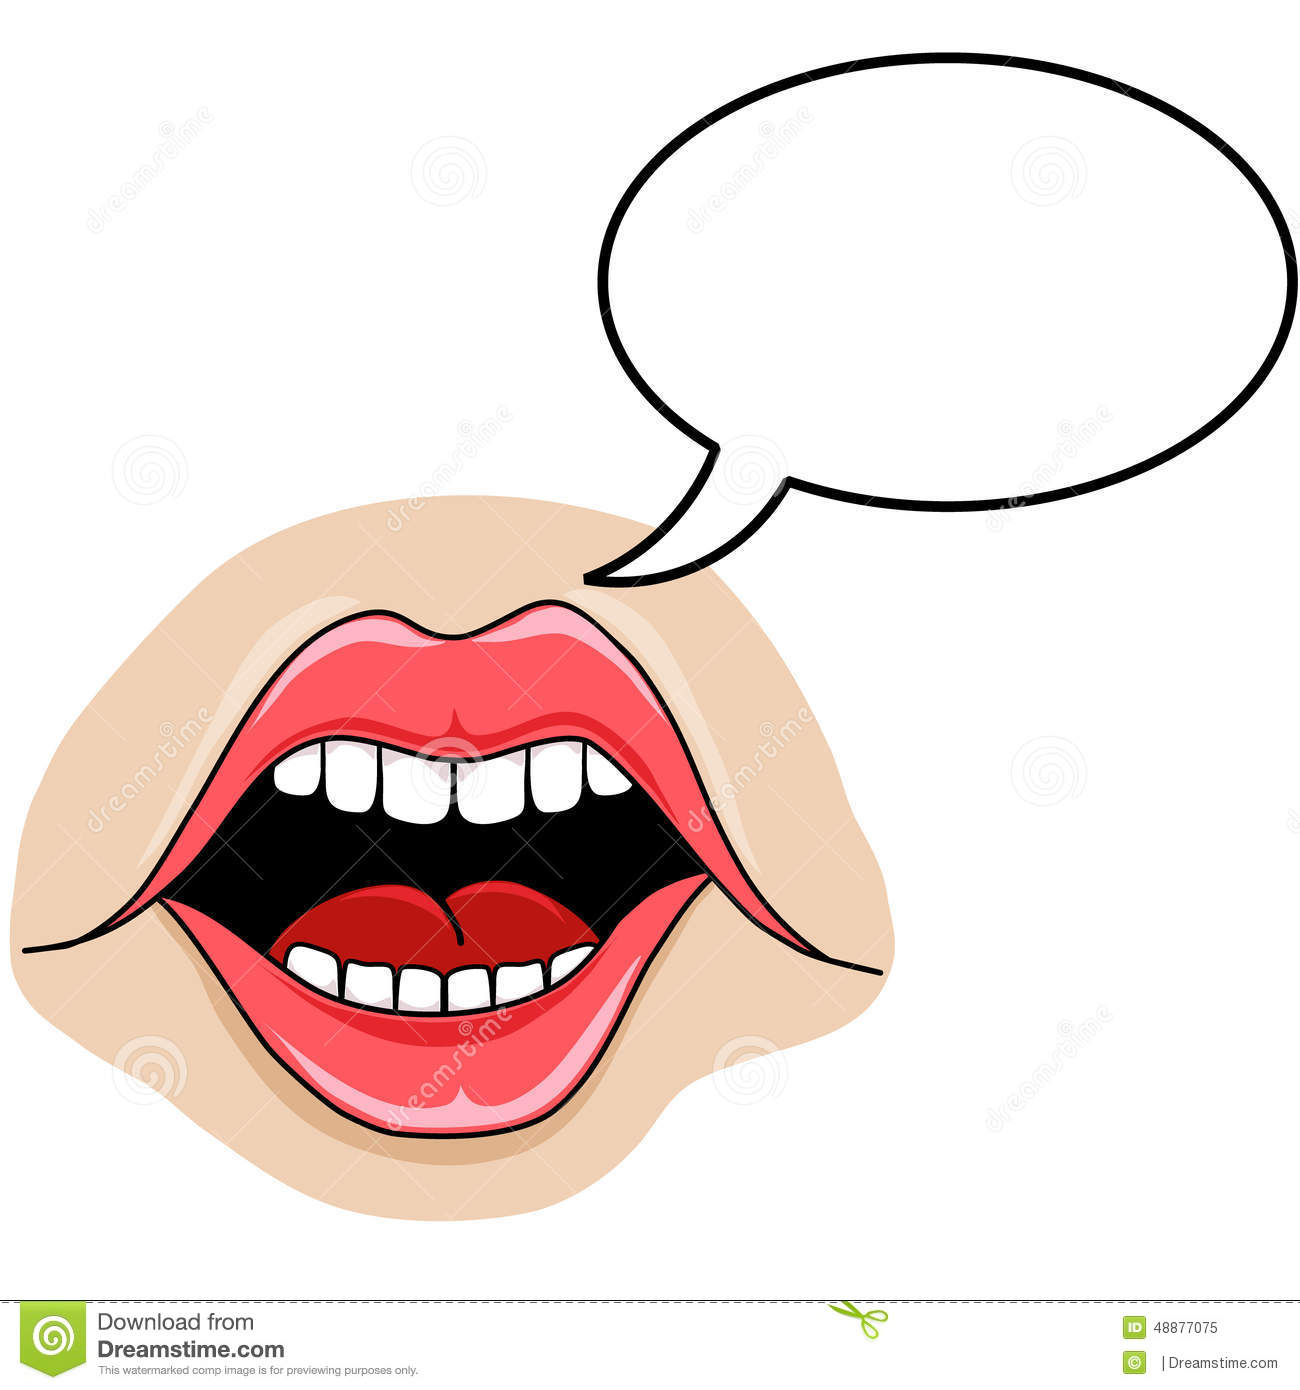 Clipart showing profile view of mouth speaking clipart free download Talking Mouth Cliparts | Free download best Talking Mouth Cliparts ... clipart free download